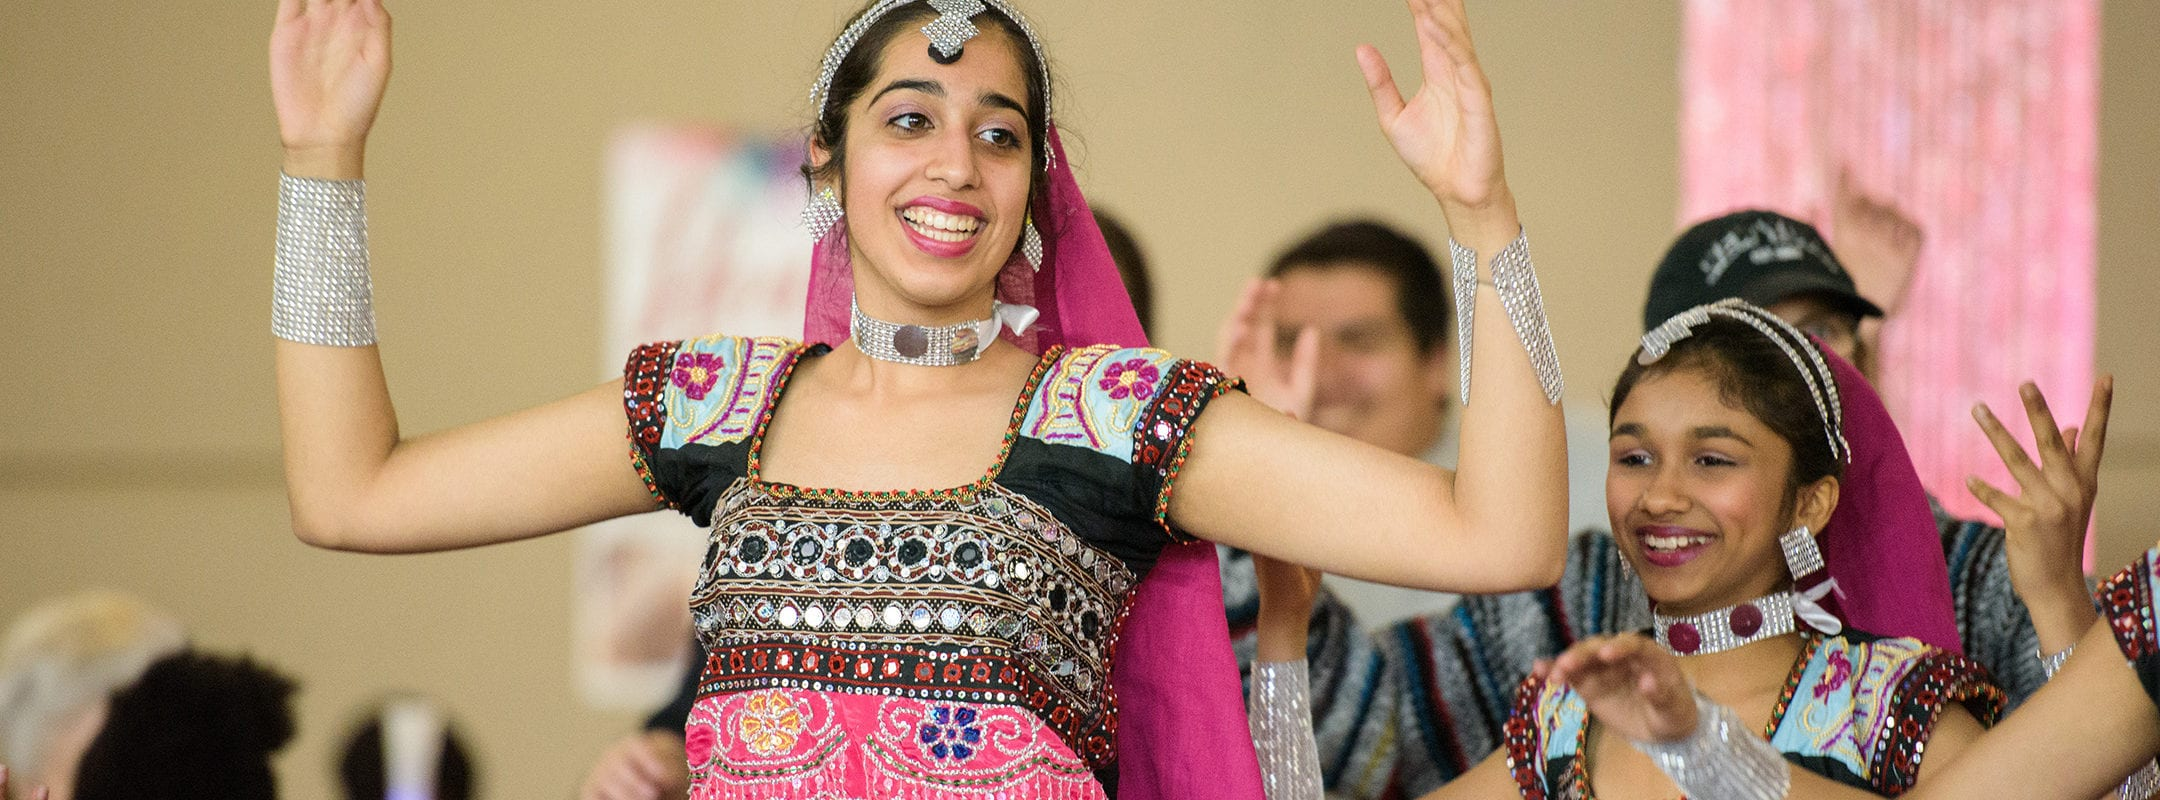 Traditional dancers from India perform during Culture Fest in the CSU dining hall.